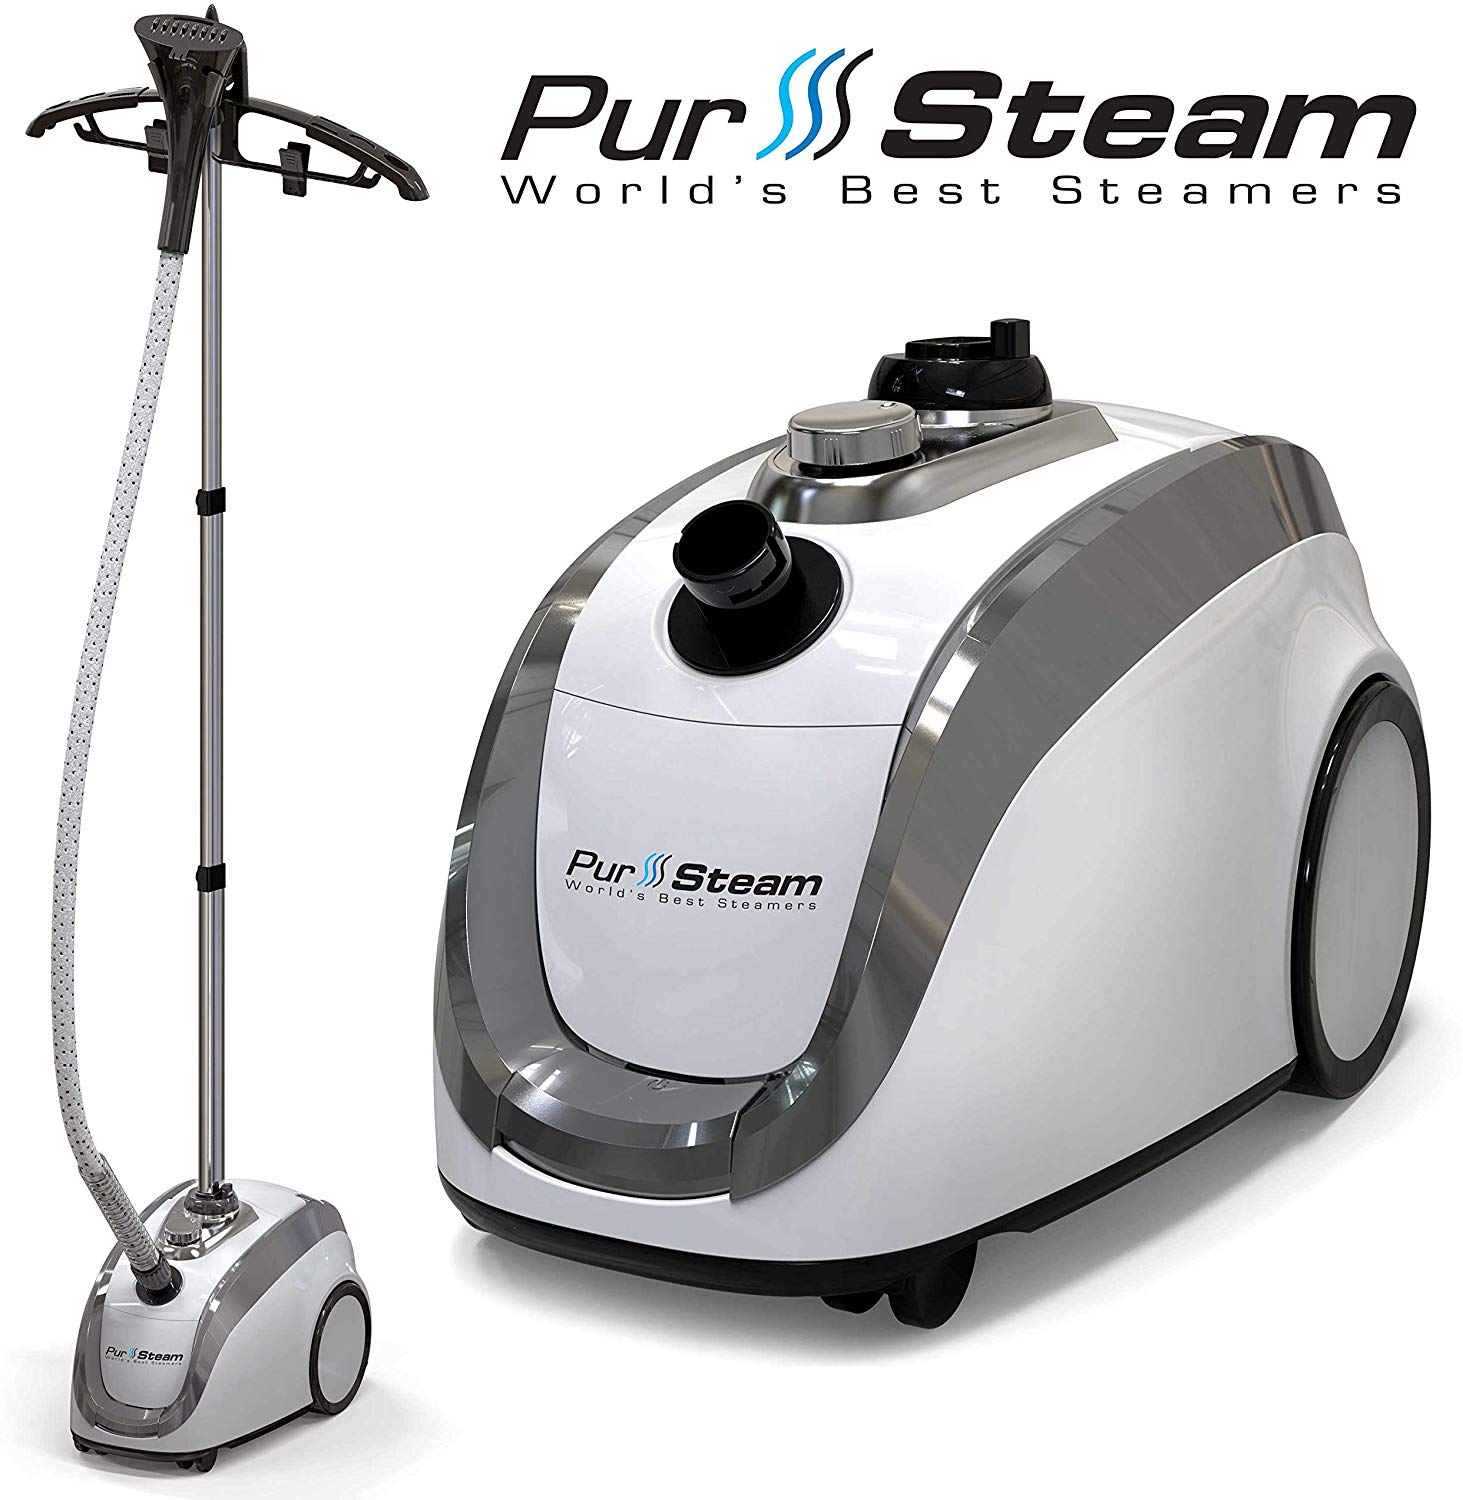 PurSteam Full Size Garment Steamer